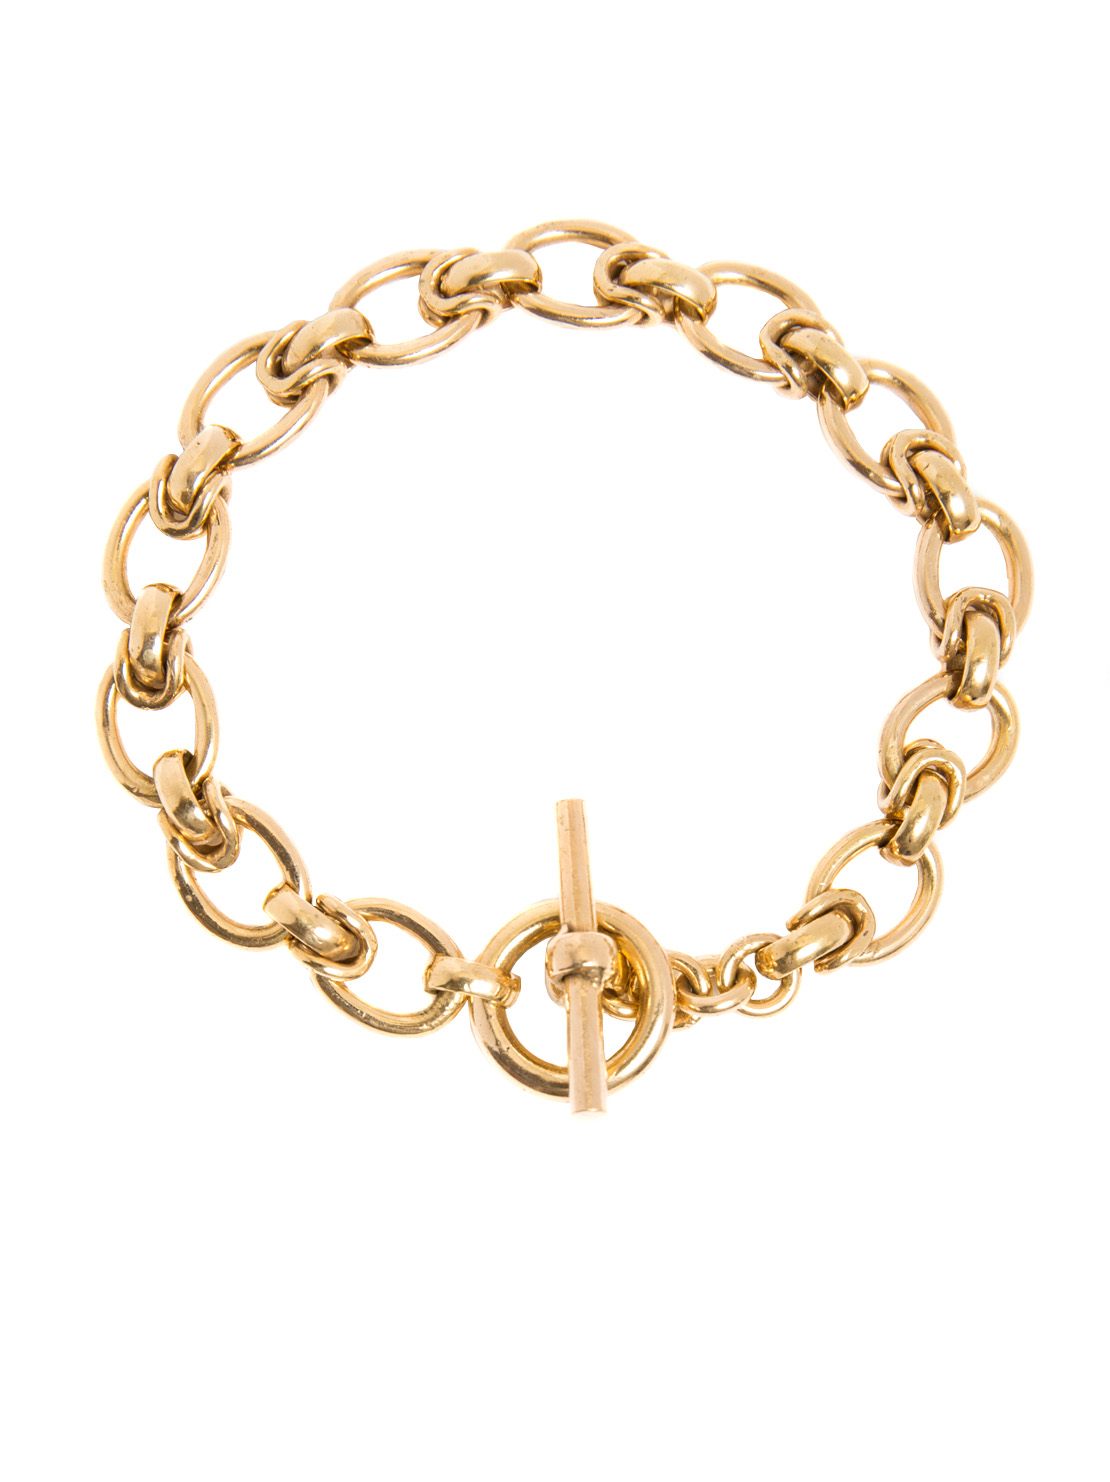 Small Gold Oval Linked Bracelet